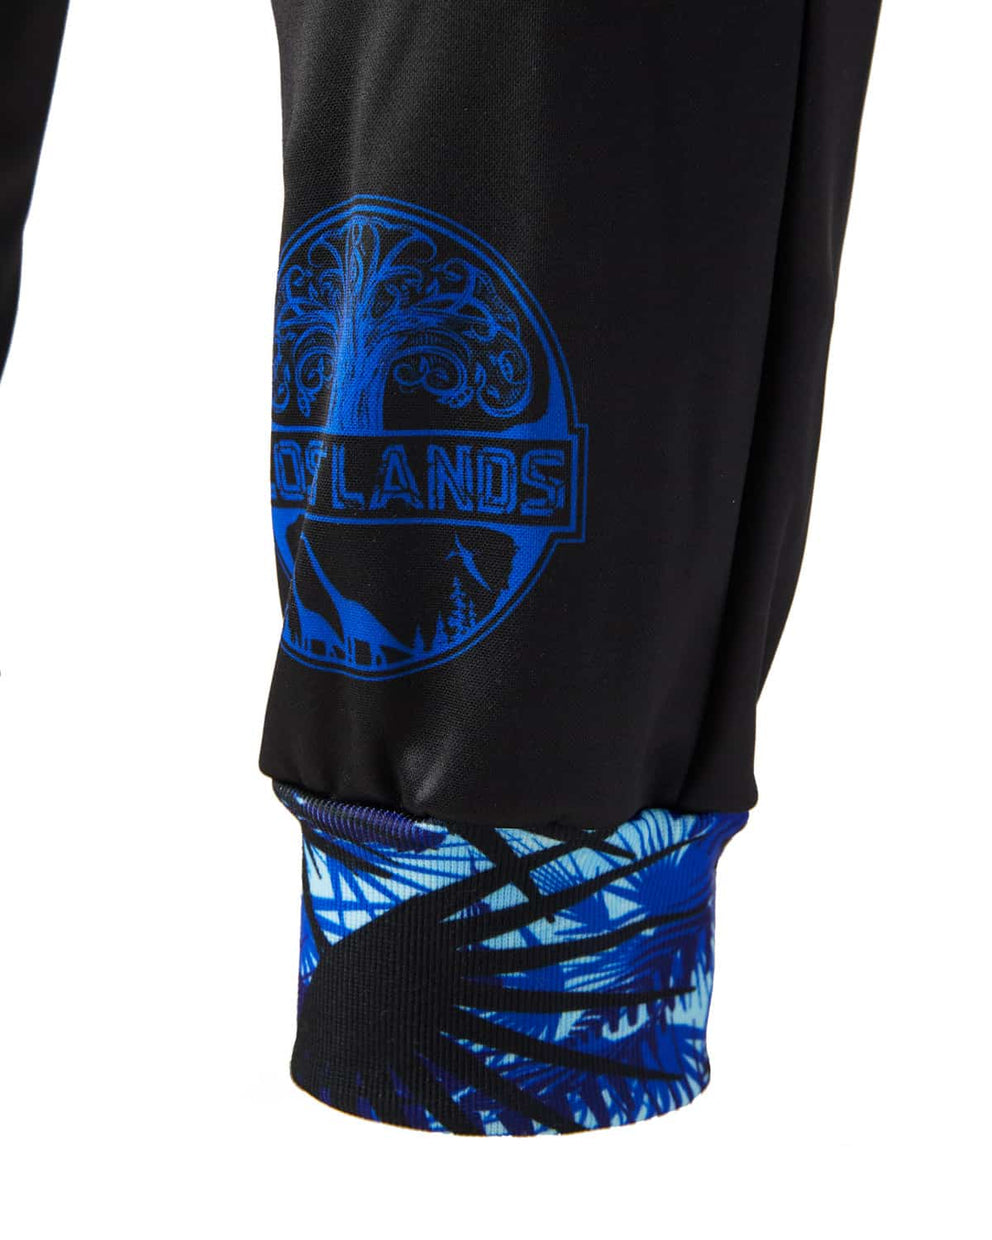 Lost Lands 'Foliage' Jogger Sweatpants (Black/Blue)